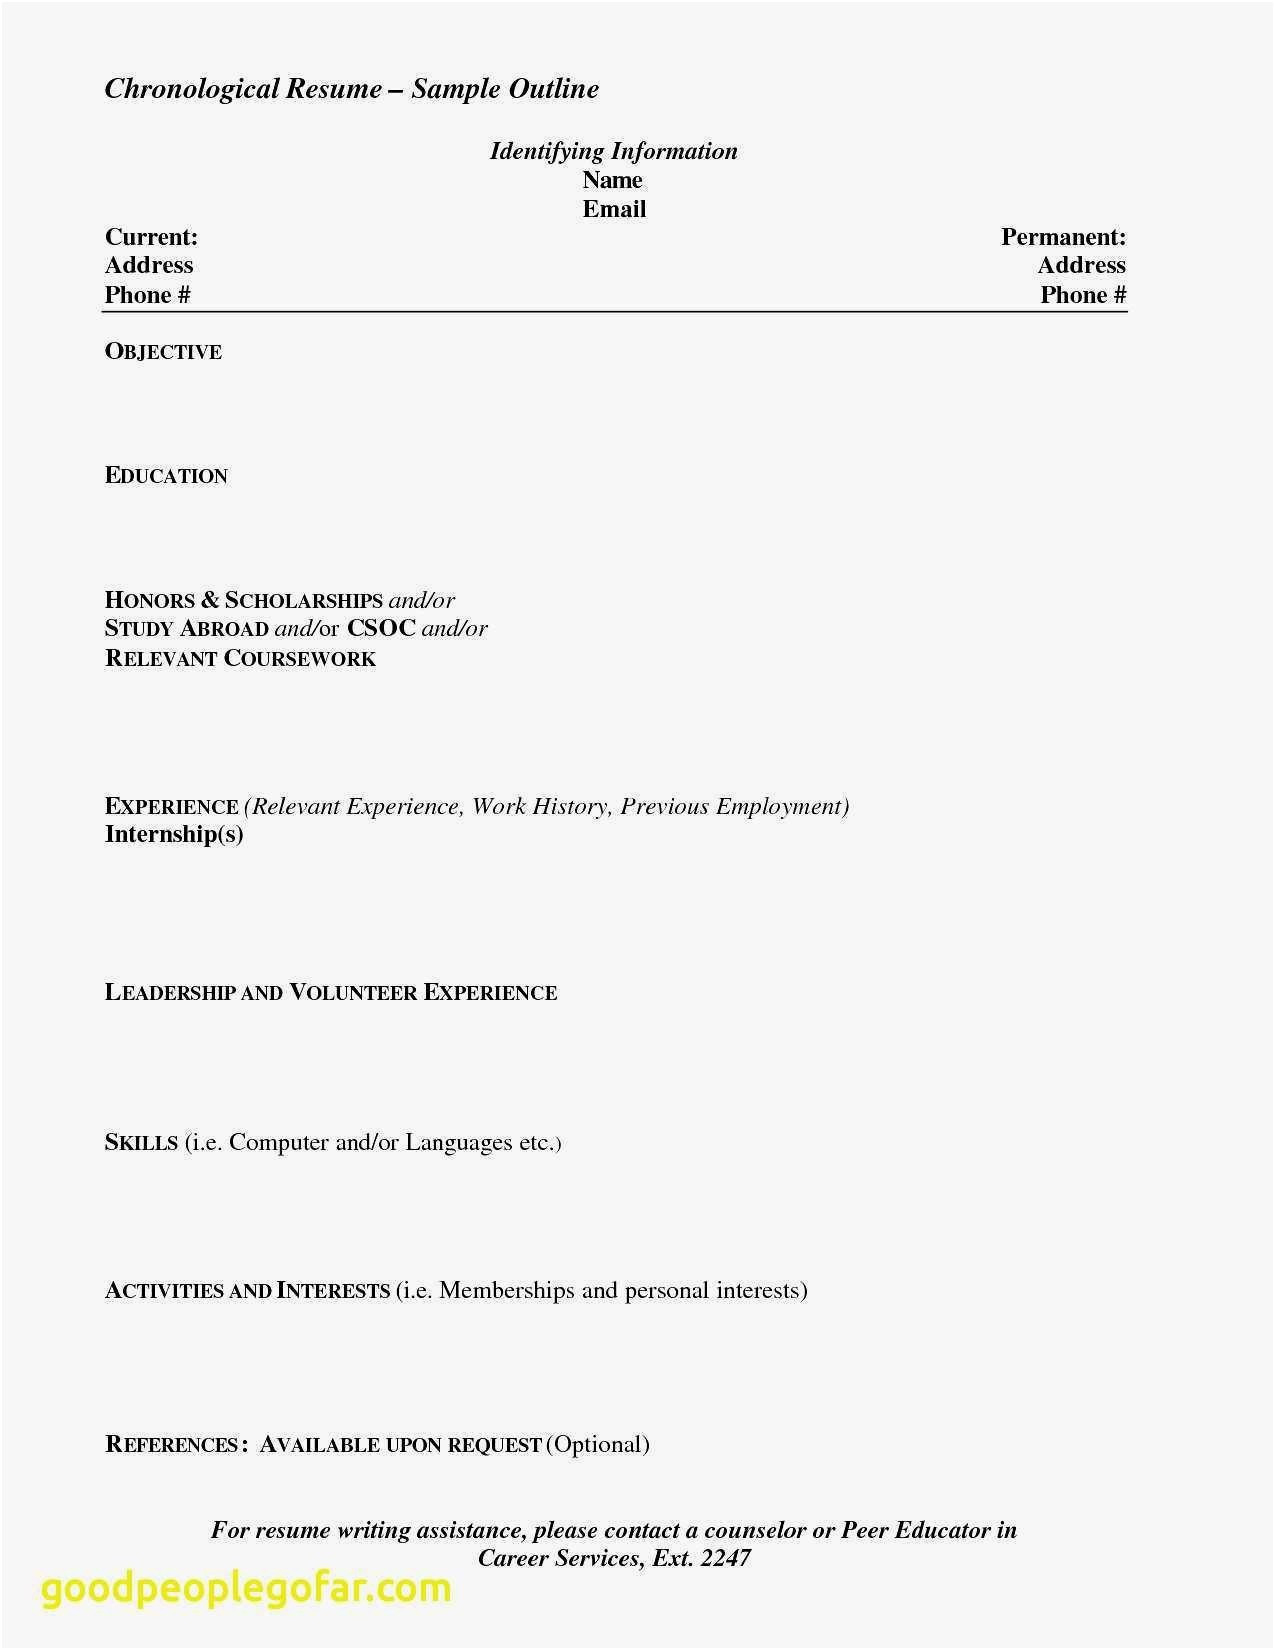 Example Of Customer Service Resume - Good Objective Statement for Resume for Customer Service Free